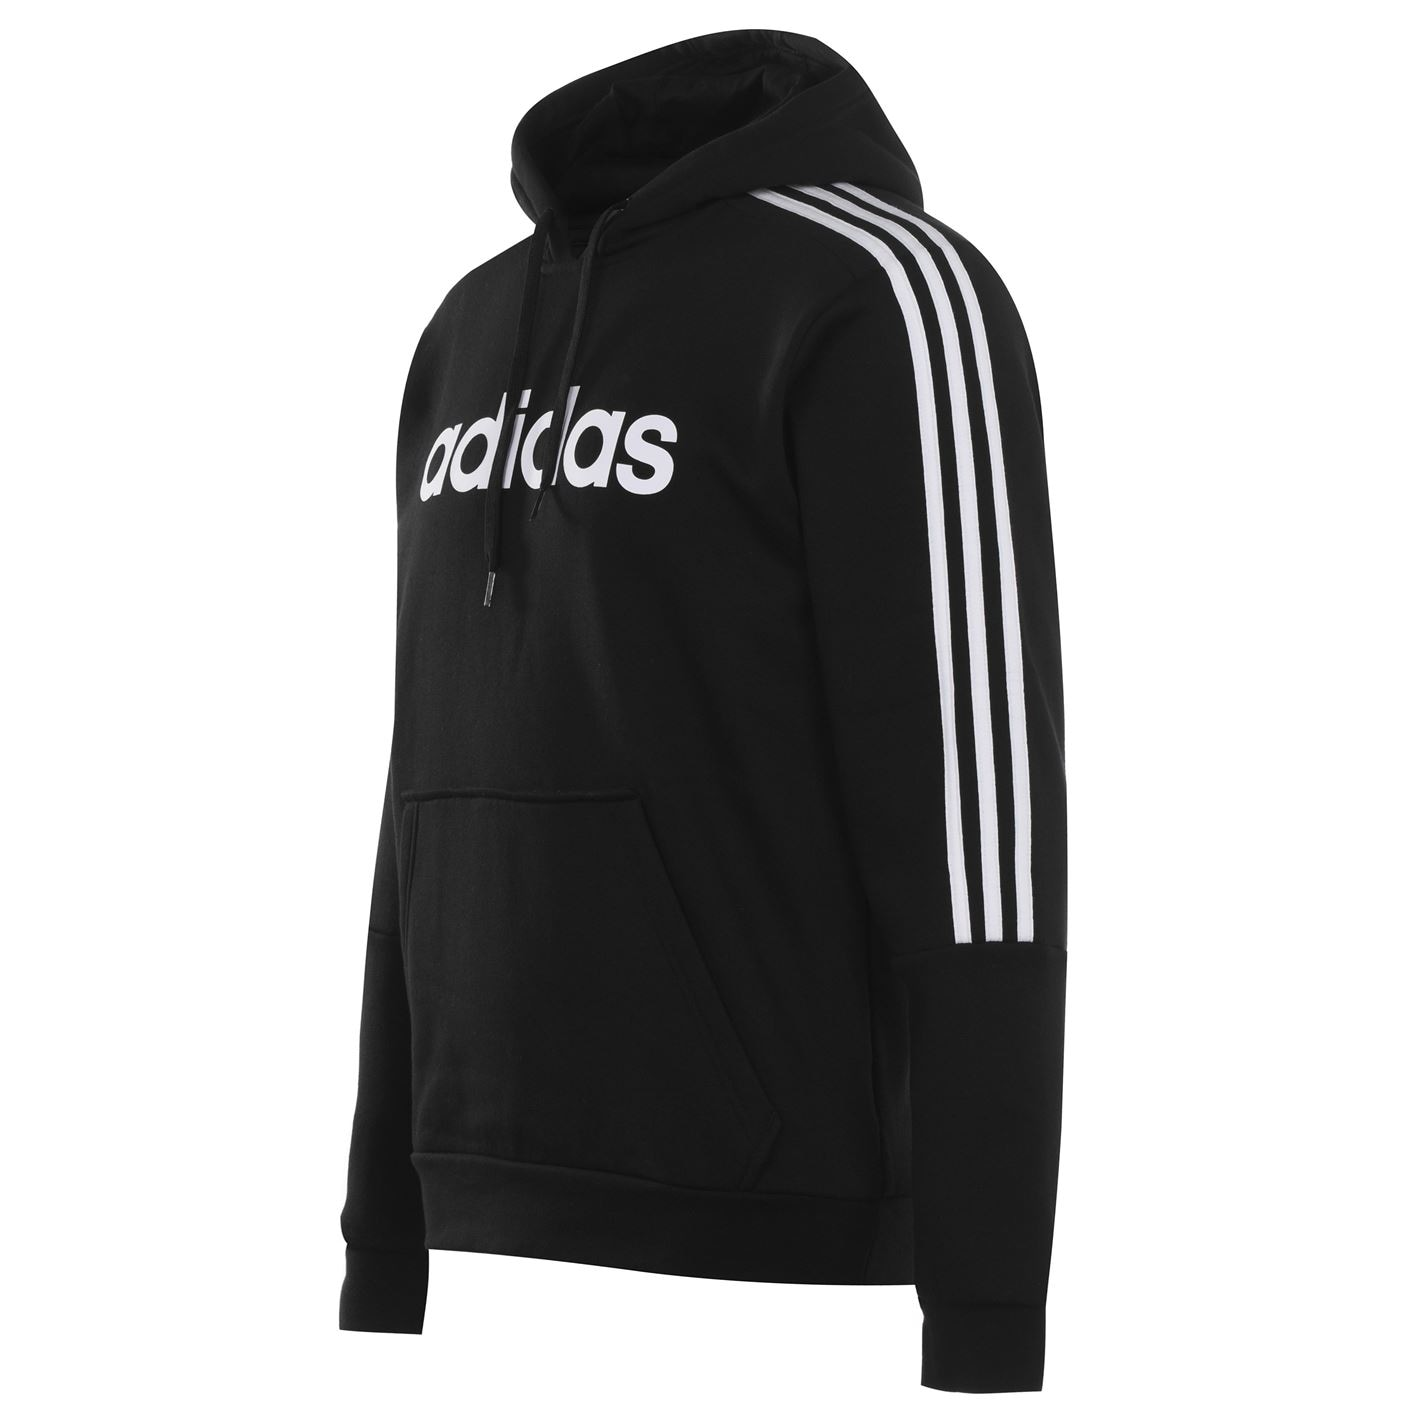 adidas 3 Stripes Logo Over The Head pánská mikina Black/White